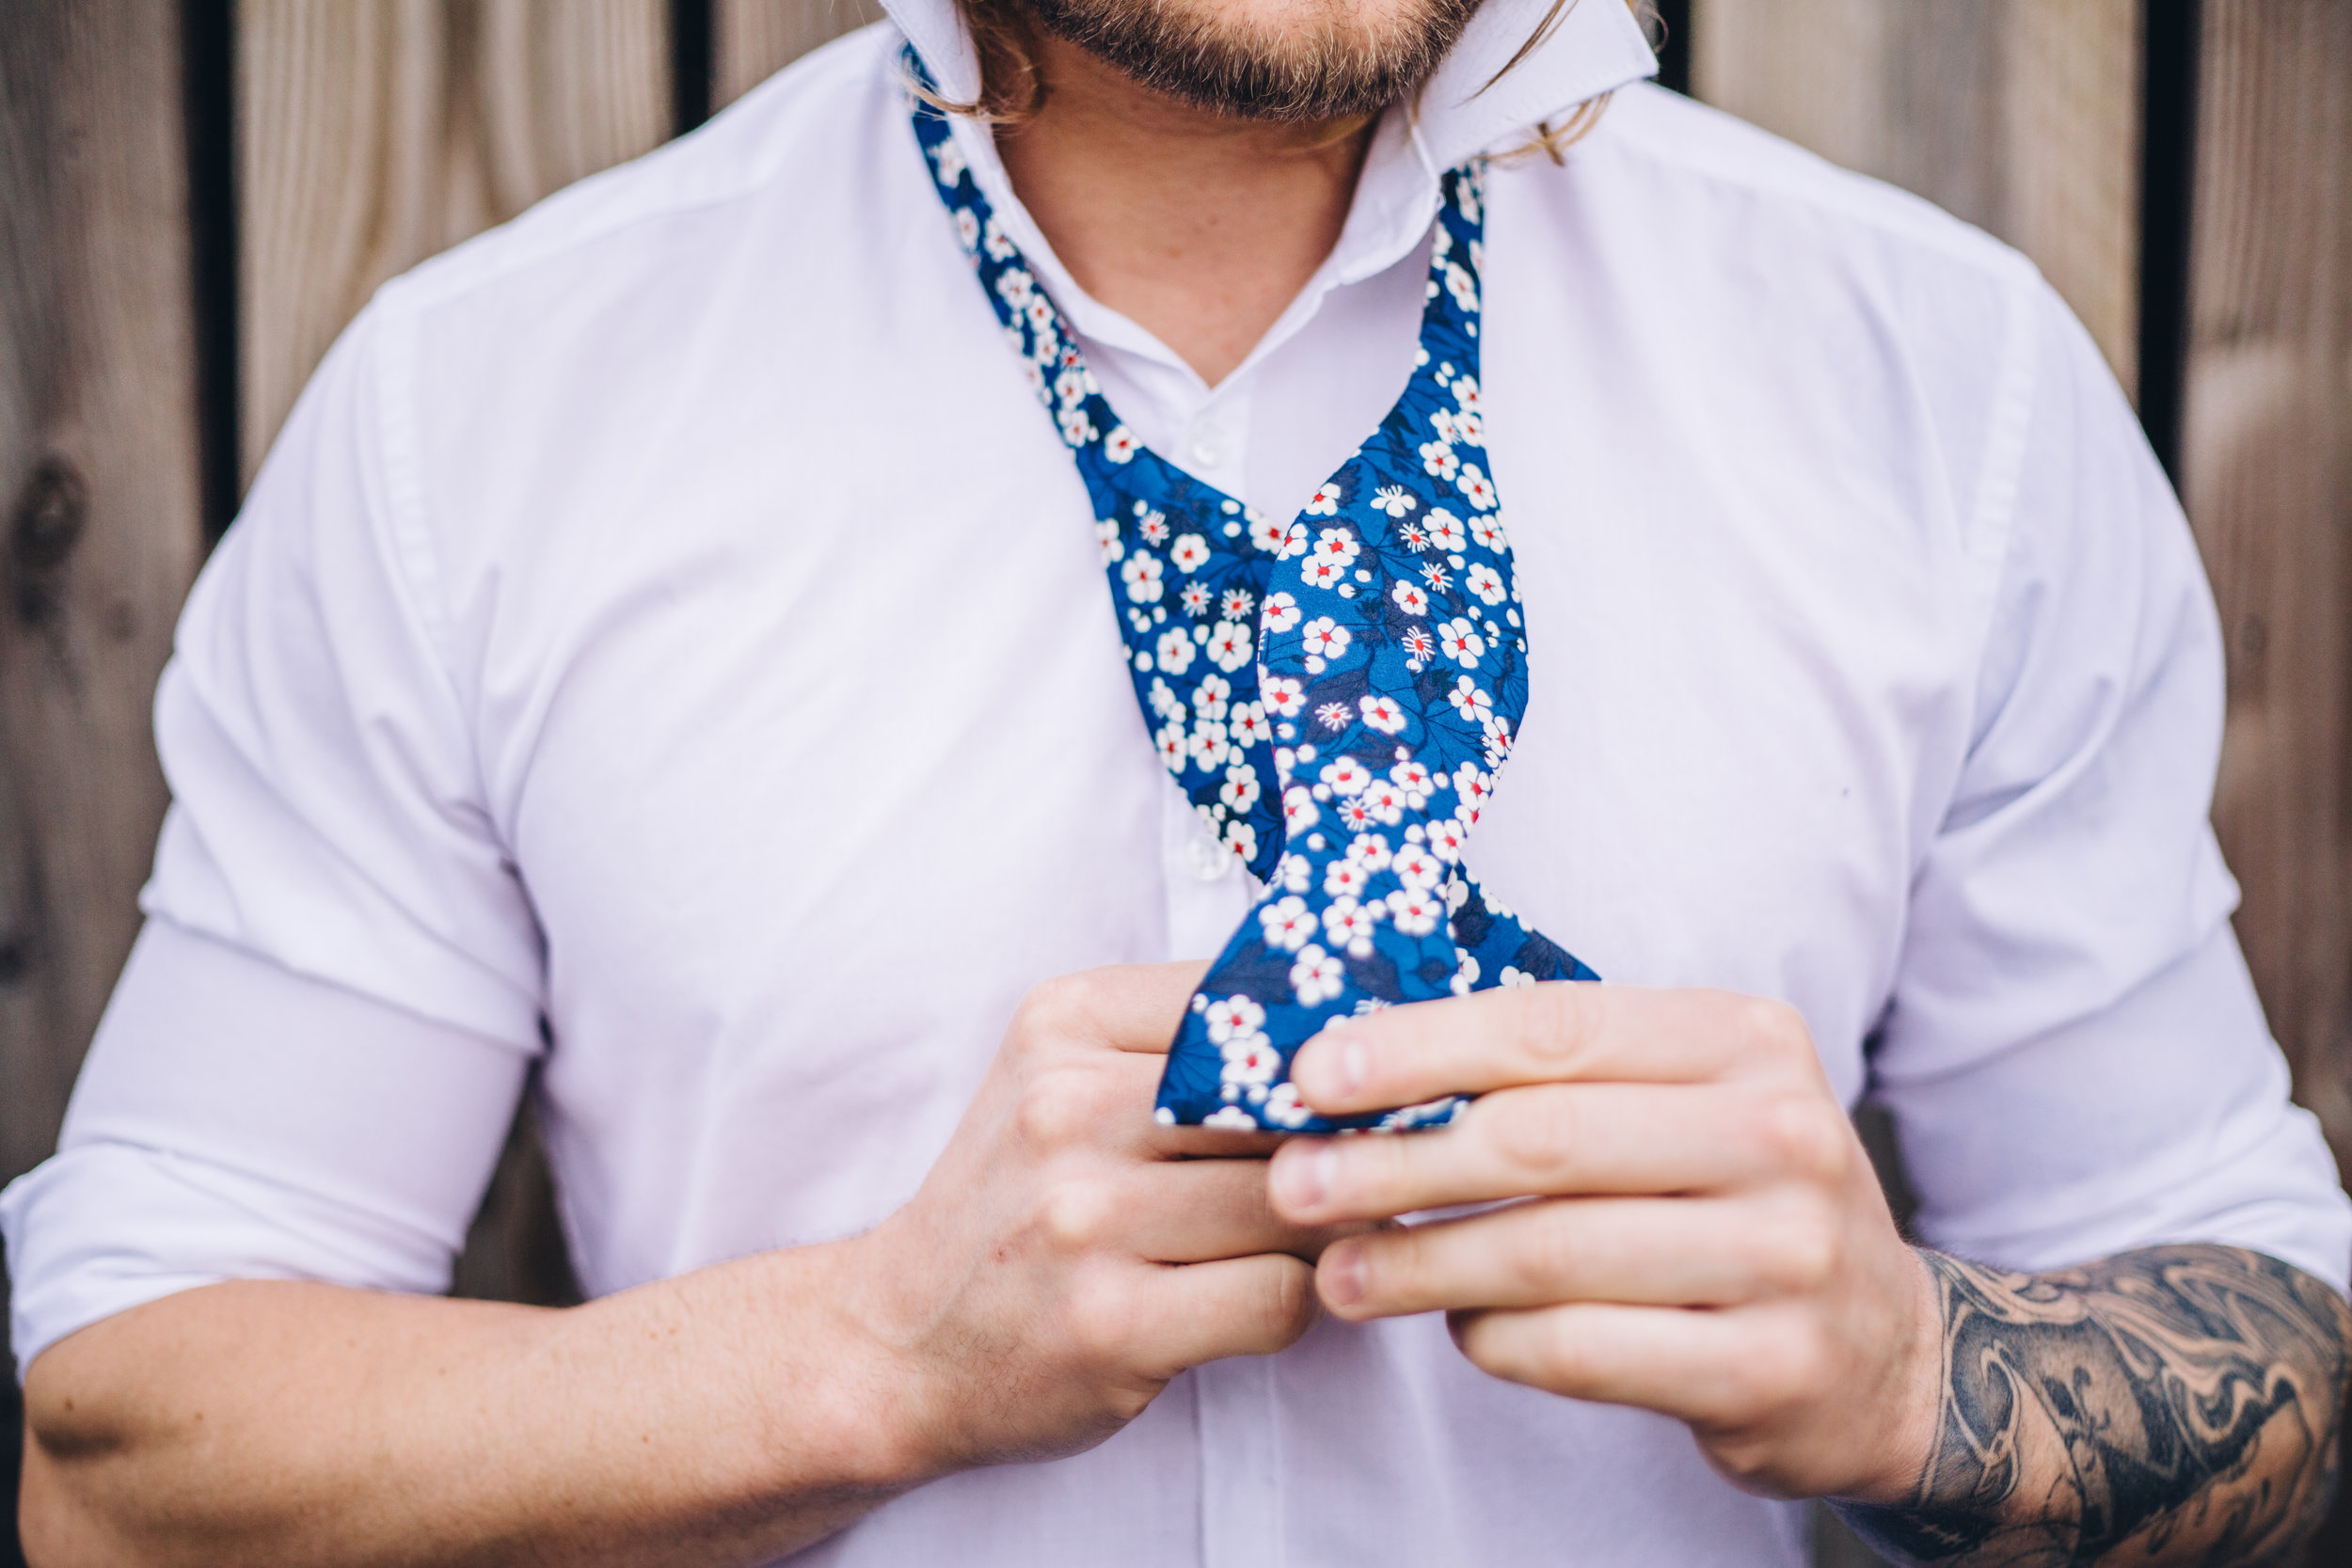 Groom Detail and Inspiration for the Alternative Wedding - Claire Basiuk Photography - 08.jpg